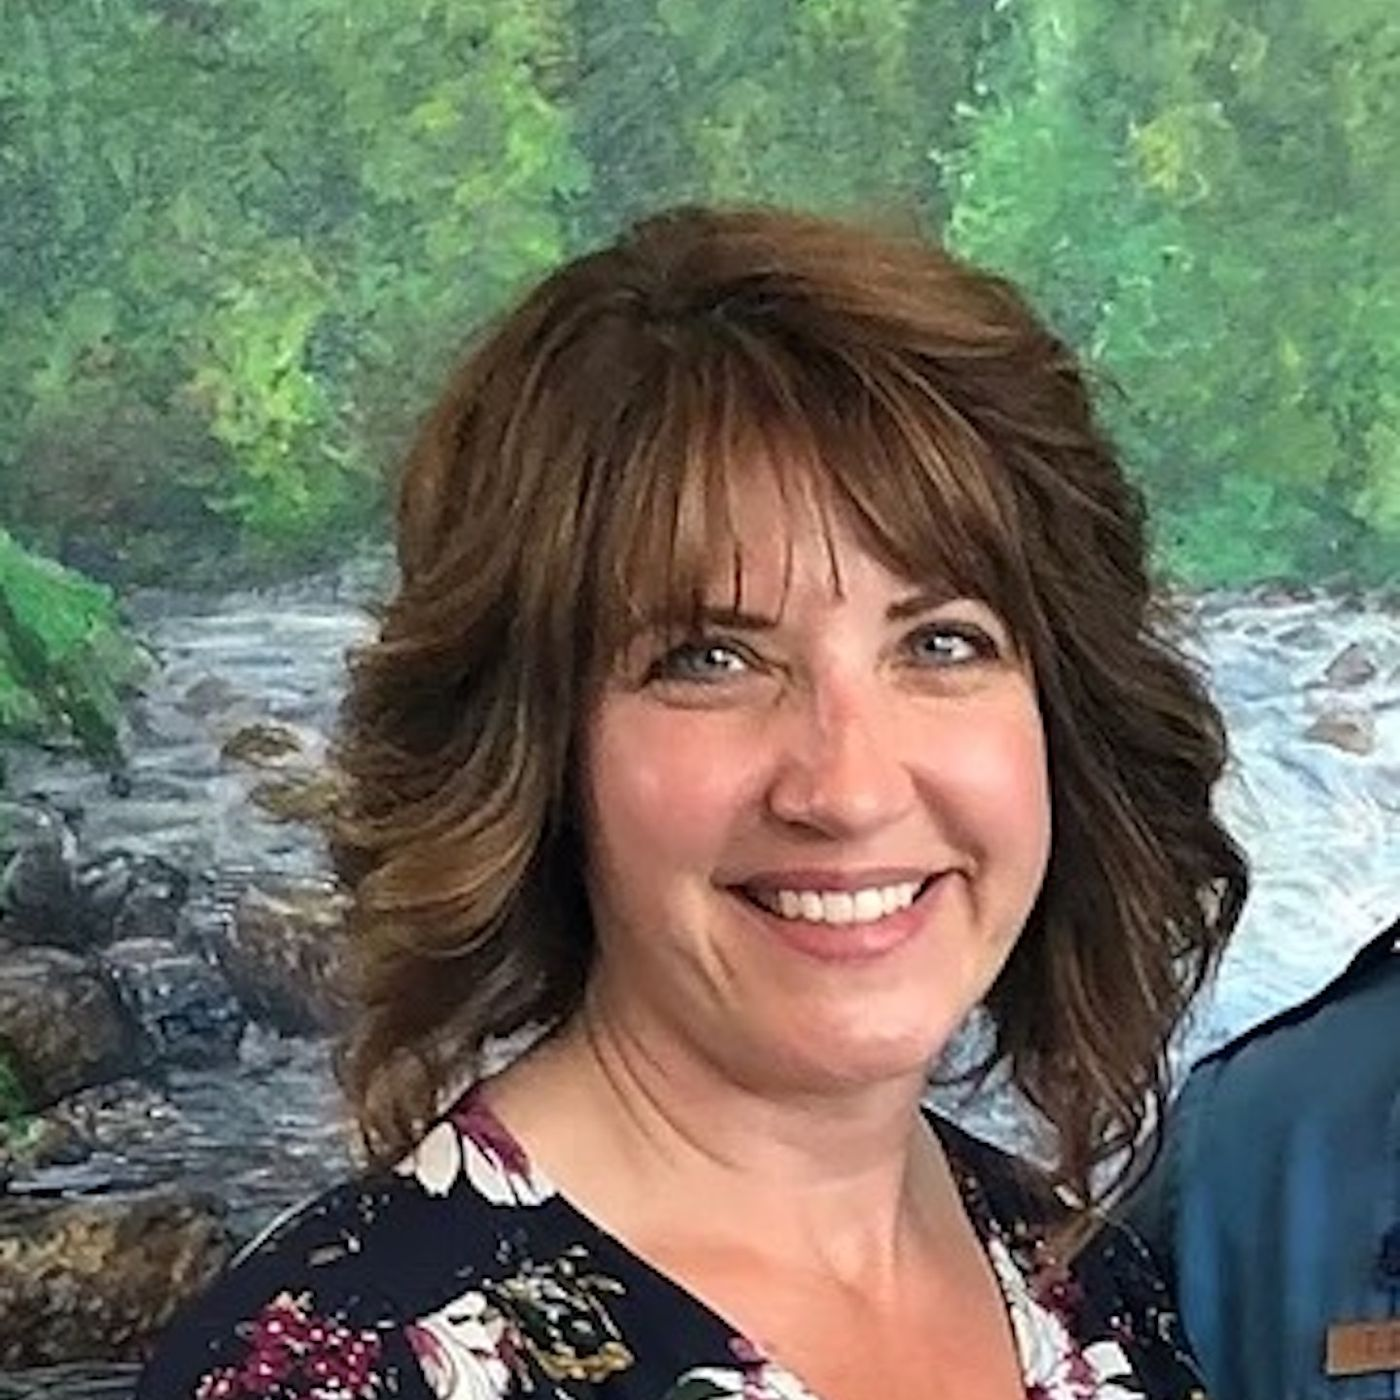 Tessa Dunn - Rockstar Wife That Held a First Responder's Family Together